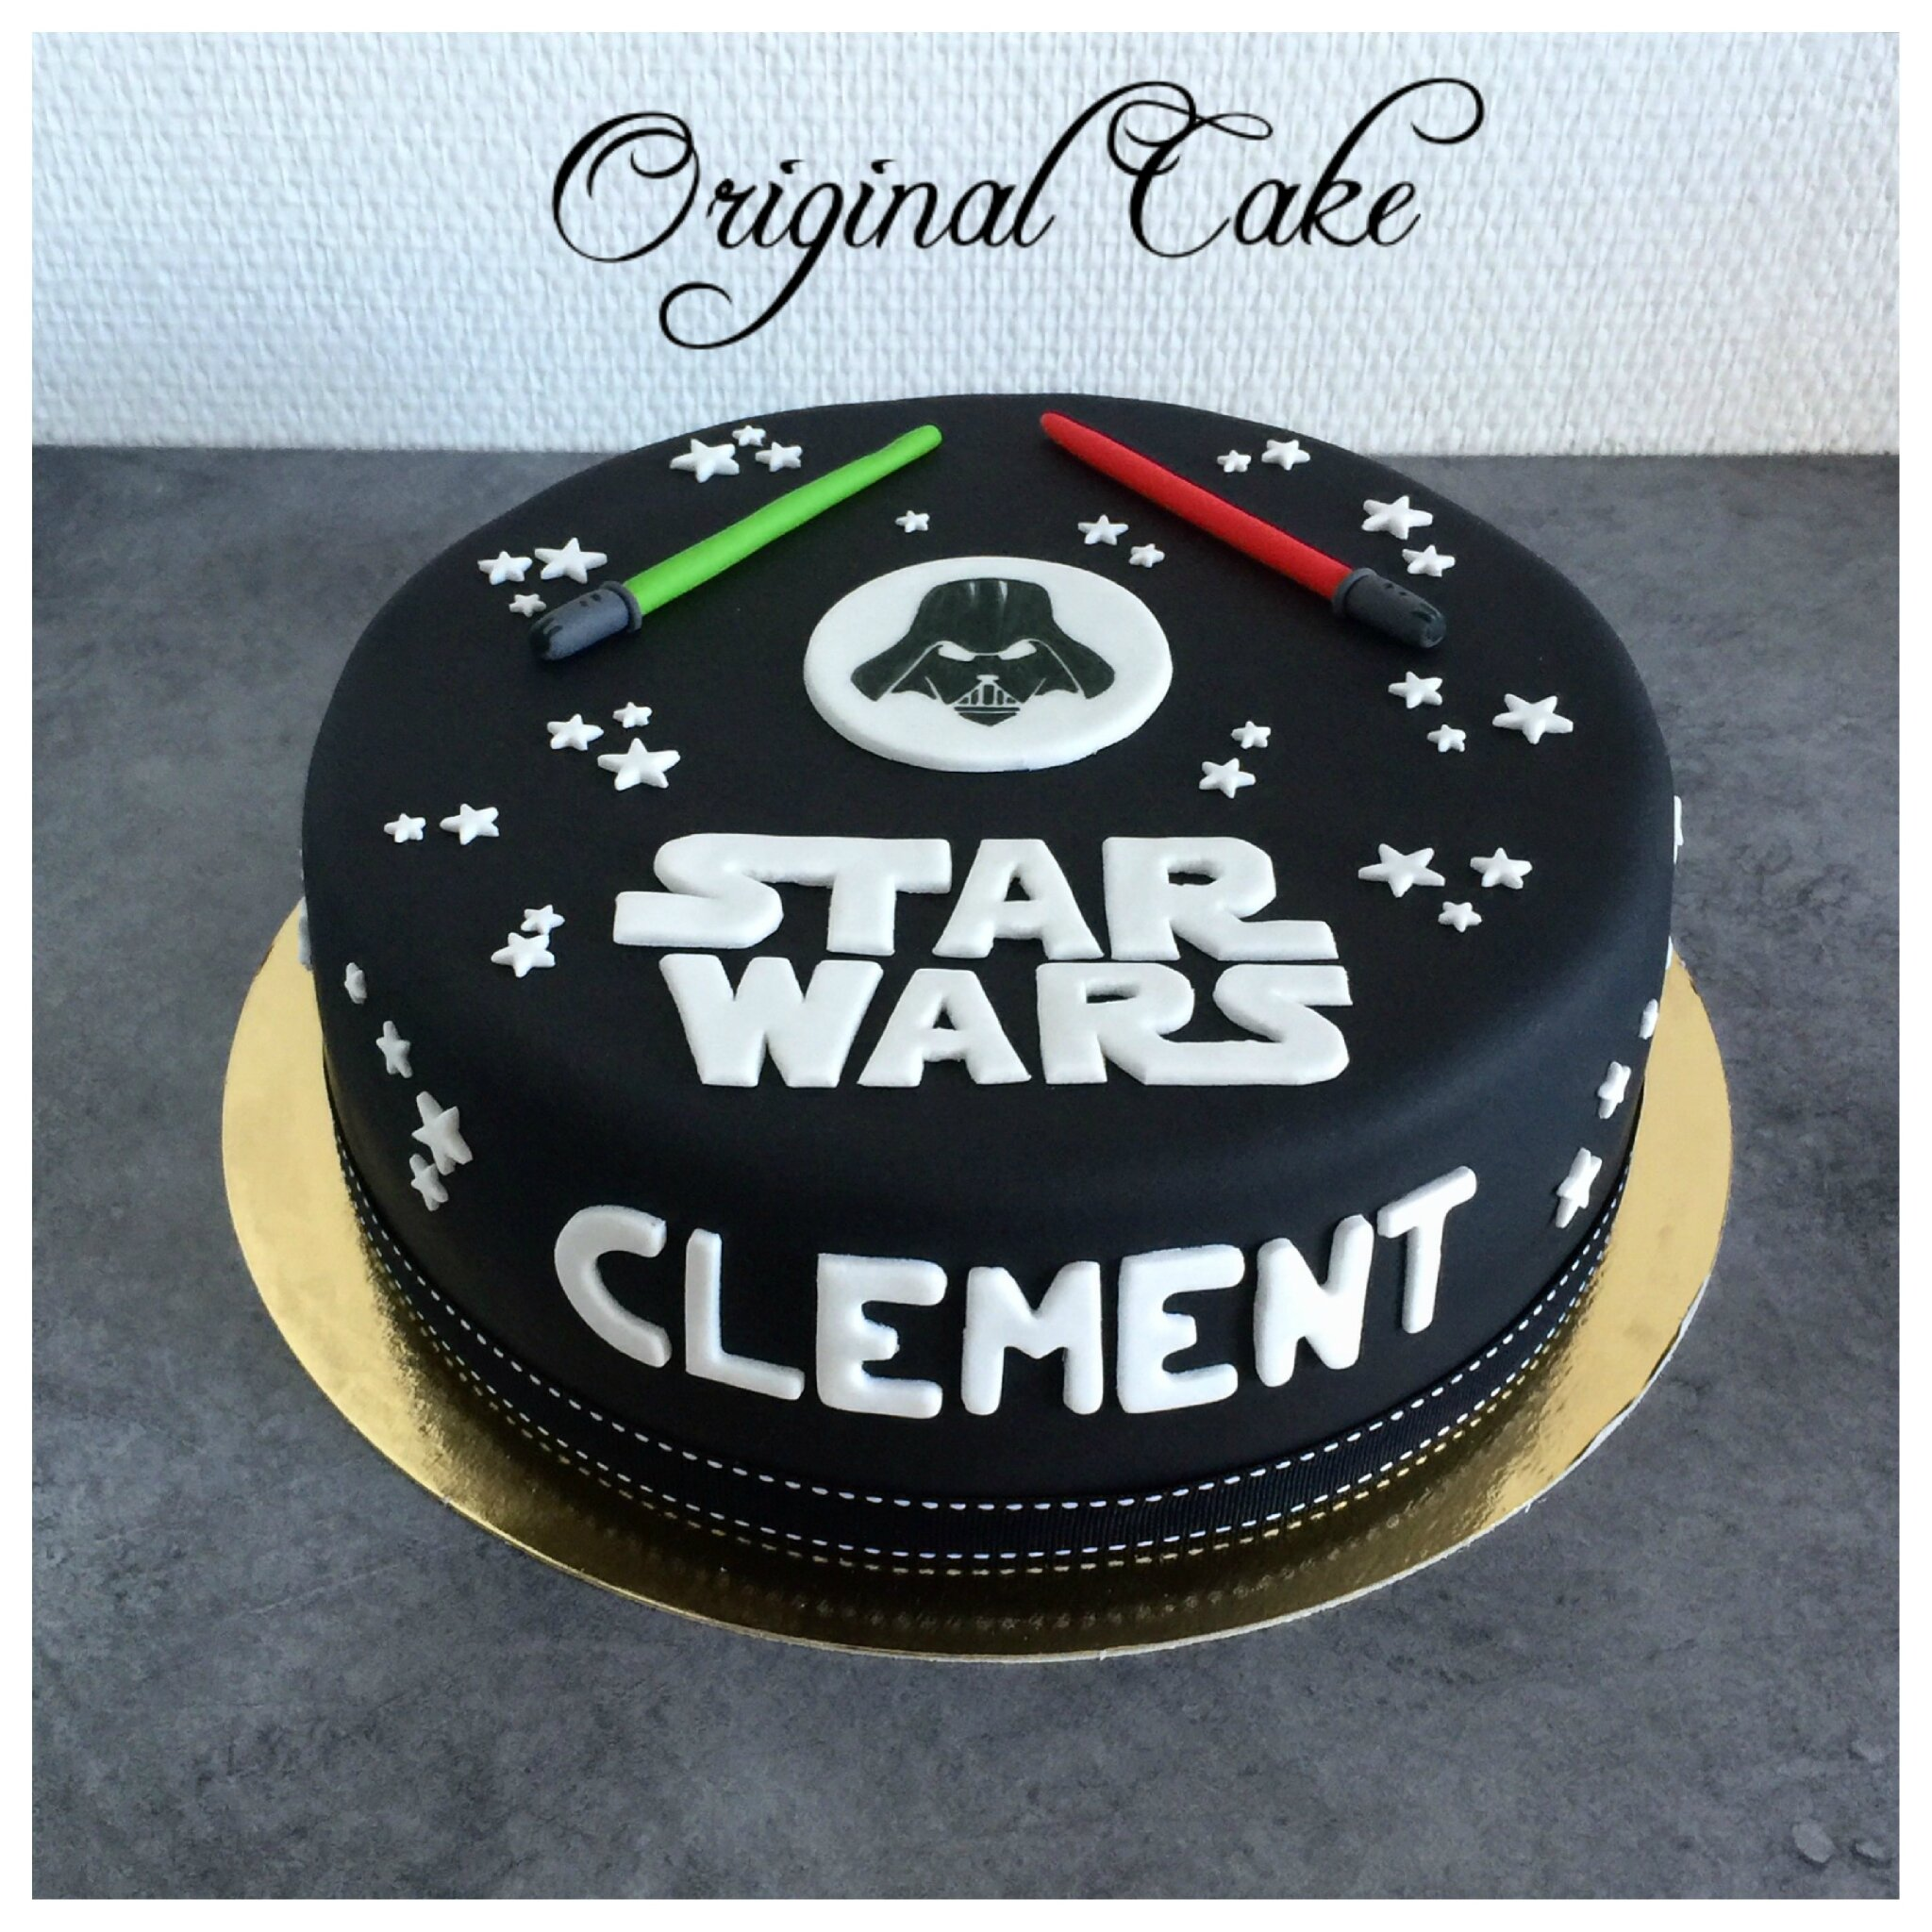 modele gateau pate a sucre star wars arts culinaires. Black Bedroom Furniture Sets. Home Design Ideas